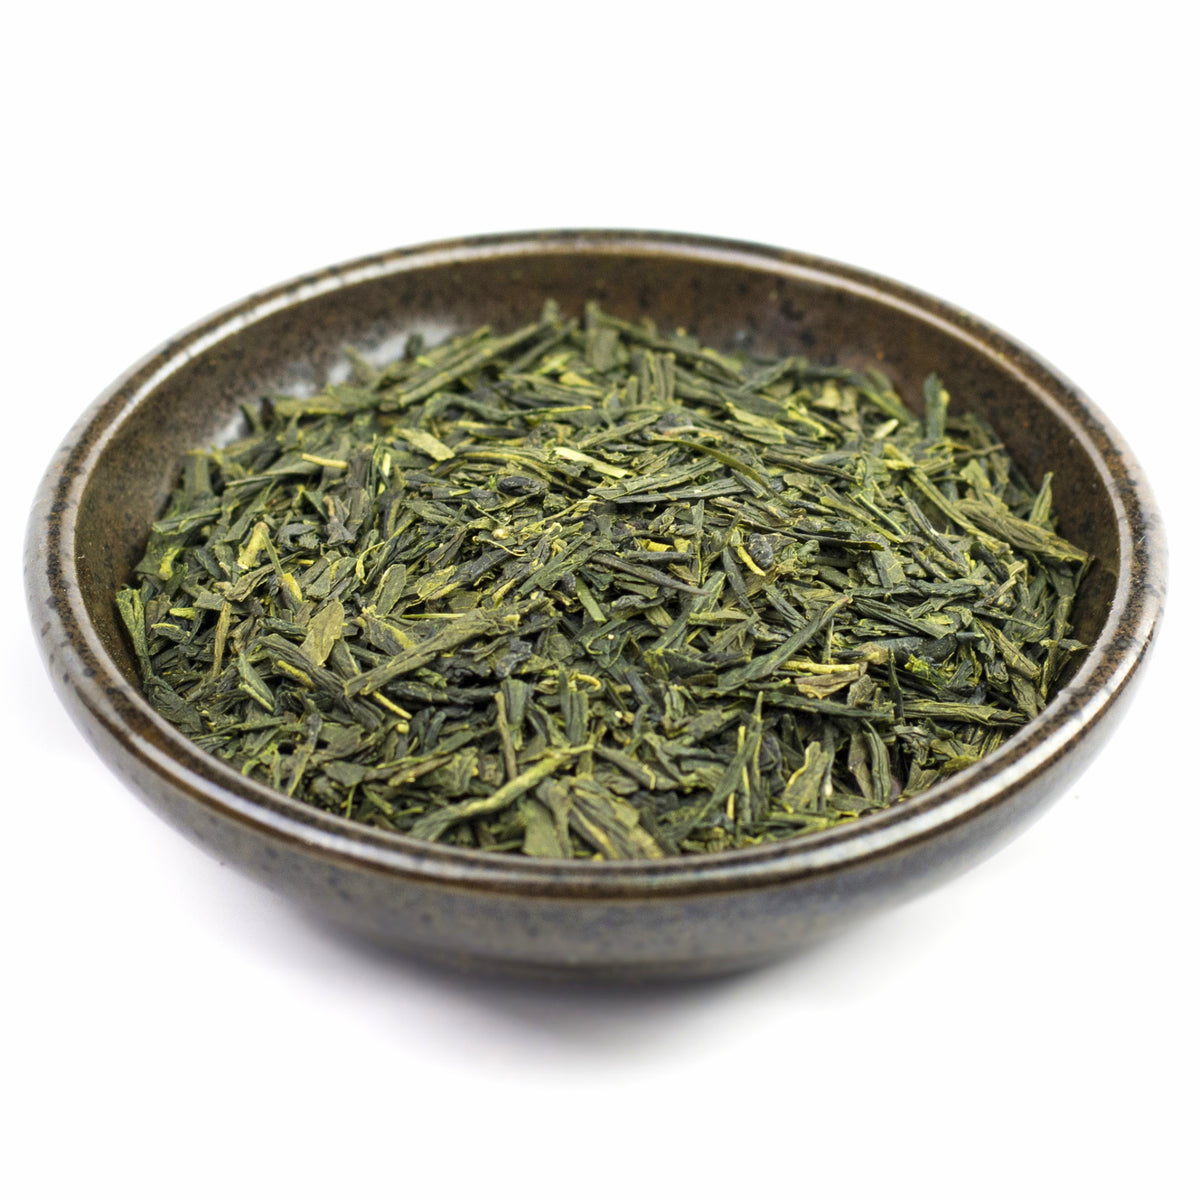 Sencha Green Tea - Tea - Red Stick Spice Company